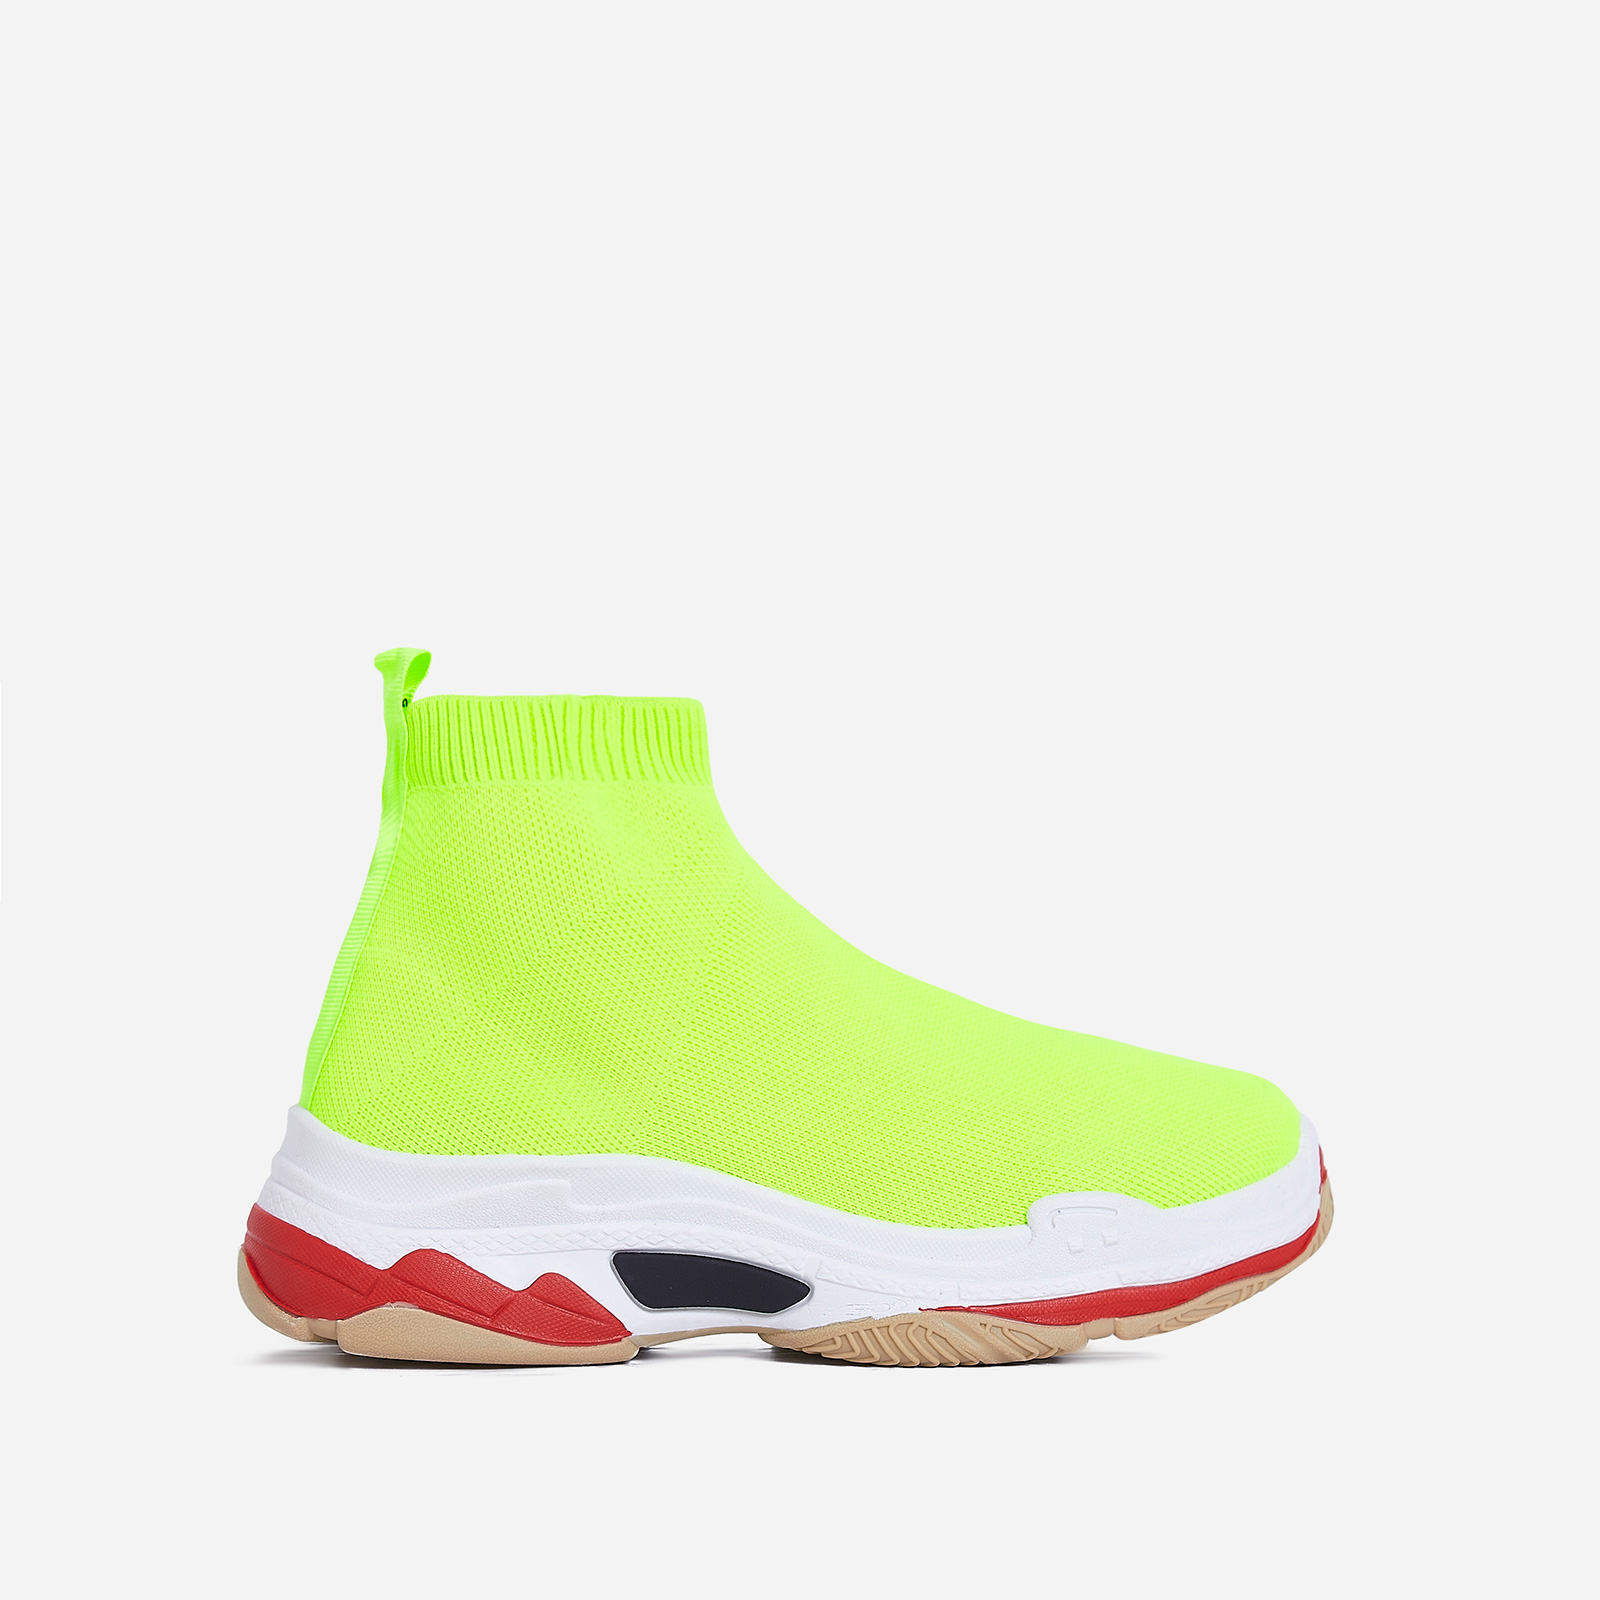 Tidal Chunky Sole Train In Neon Yellow Knit